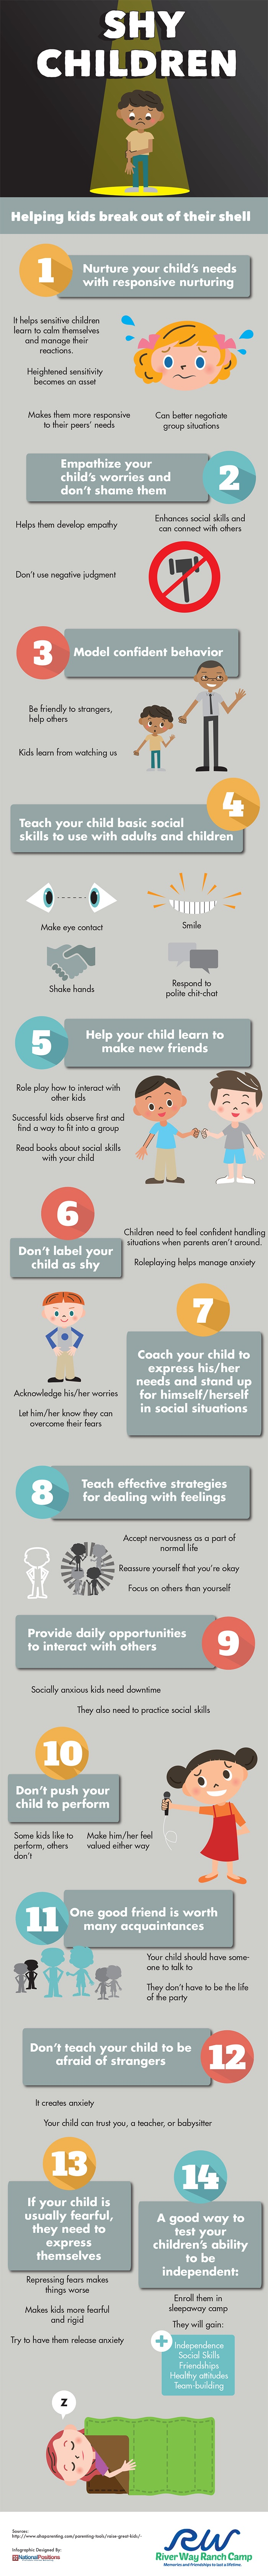 How to Help Shy Kids Break Out of Their Shell Infographic